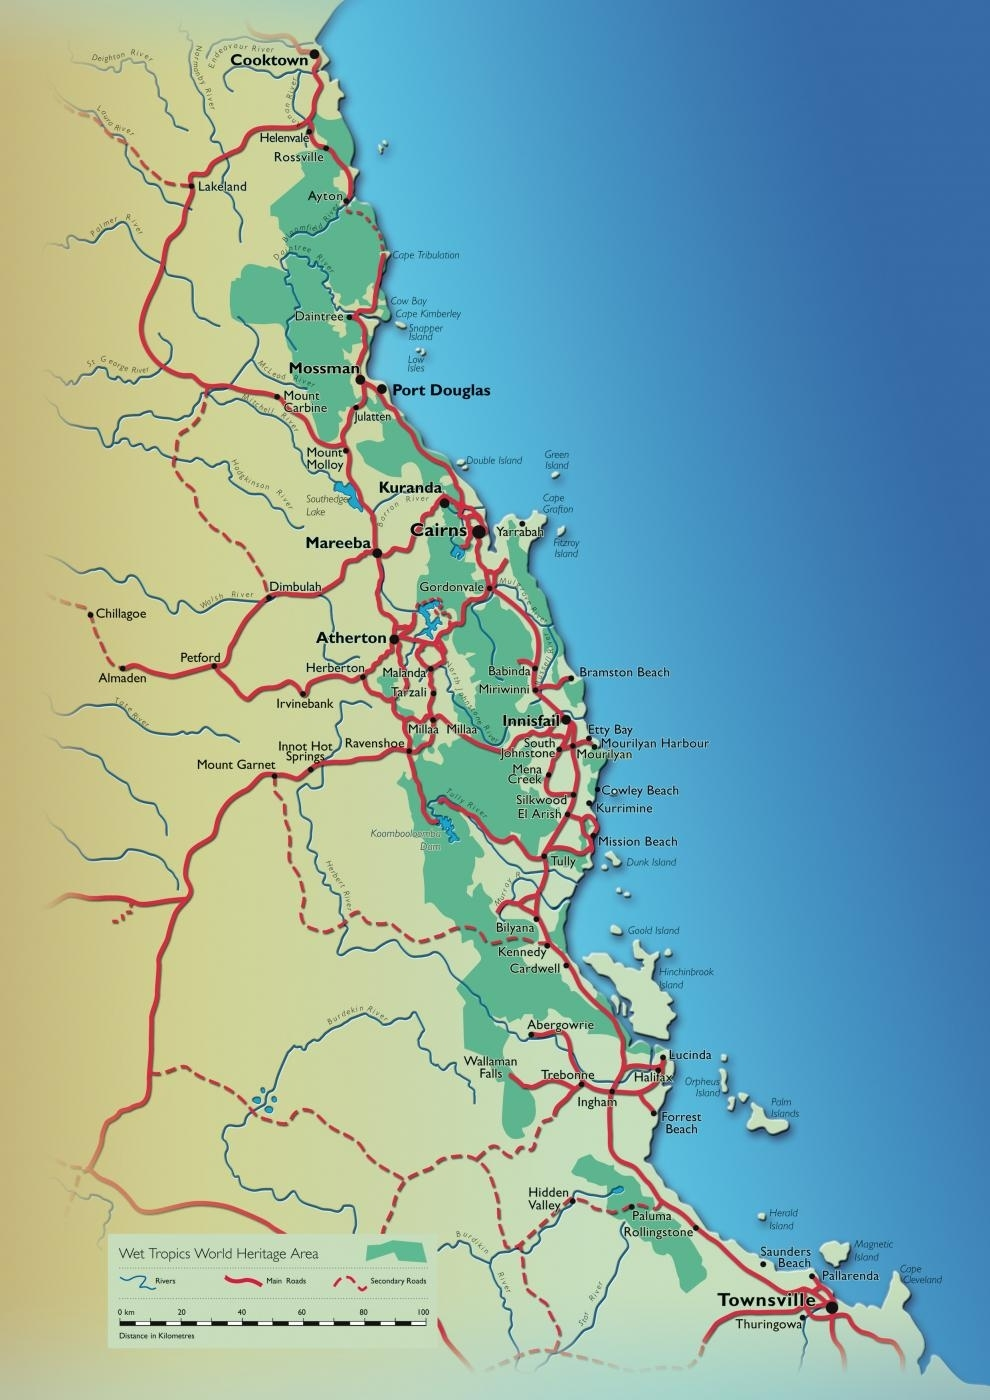 World Heritage Area Maps | Wet Tropics Management Authority within Cairns Australia Map Google Earth